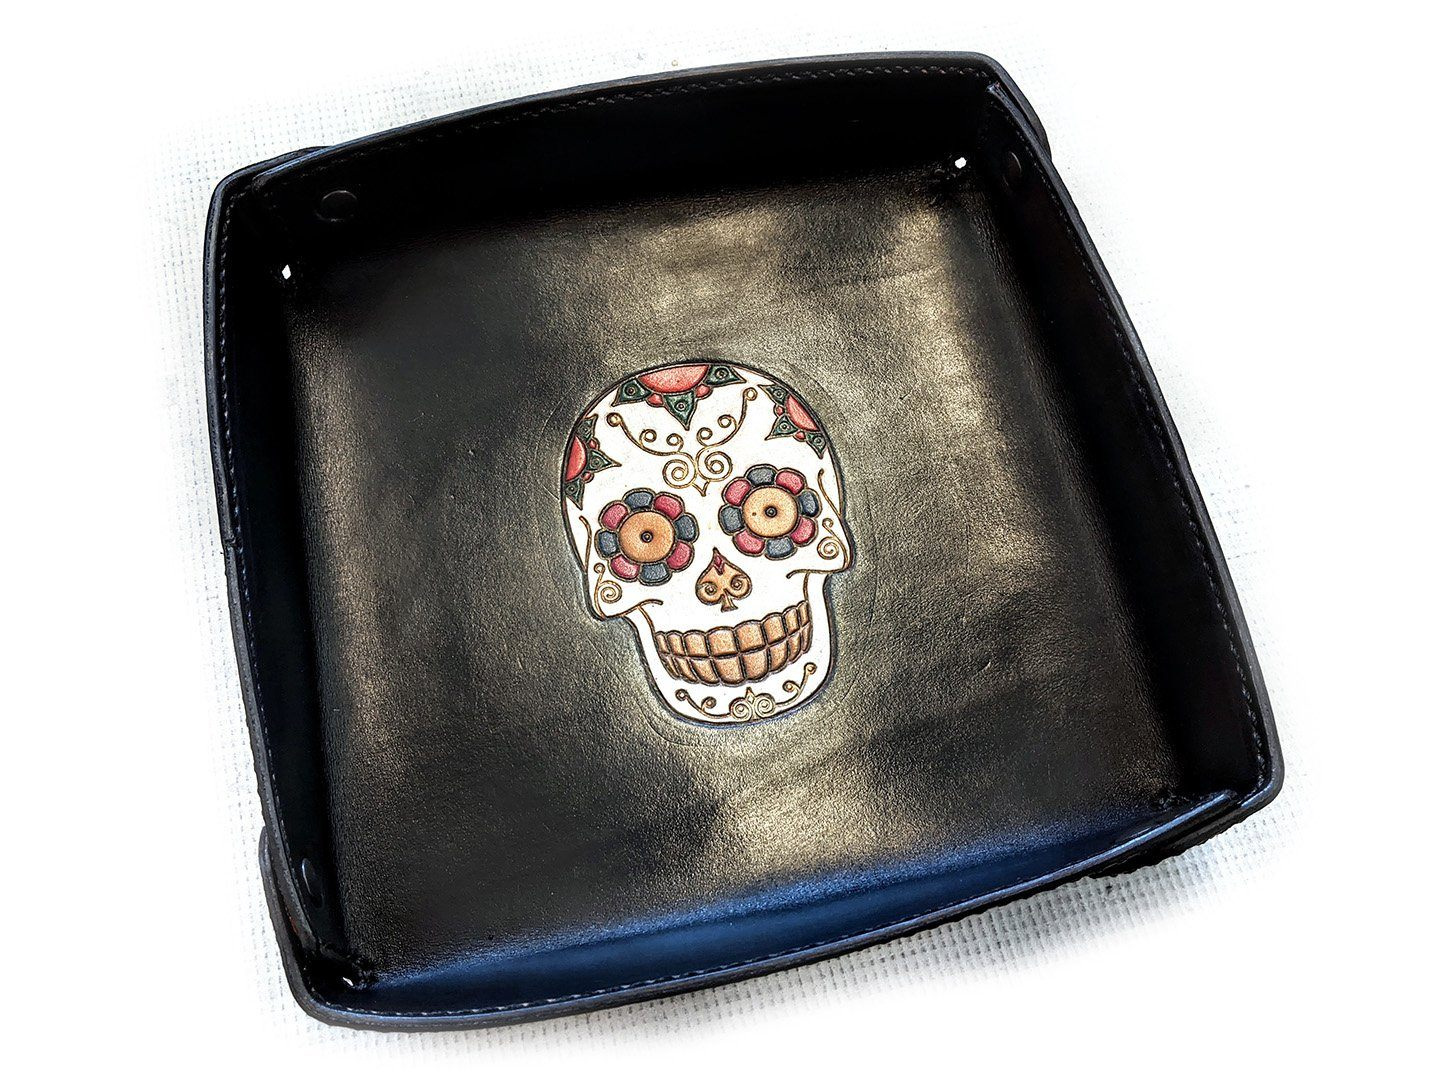 8 Inch EDC Tray - Hand Stained Sugar Skull